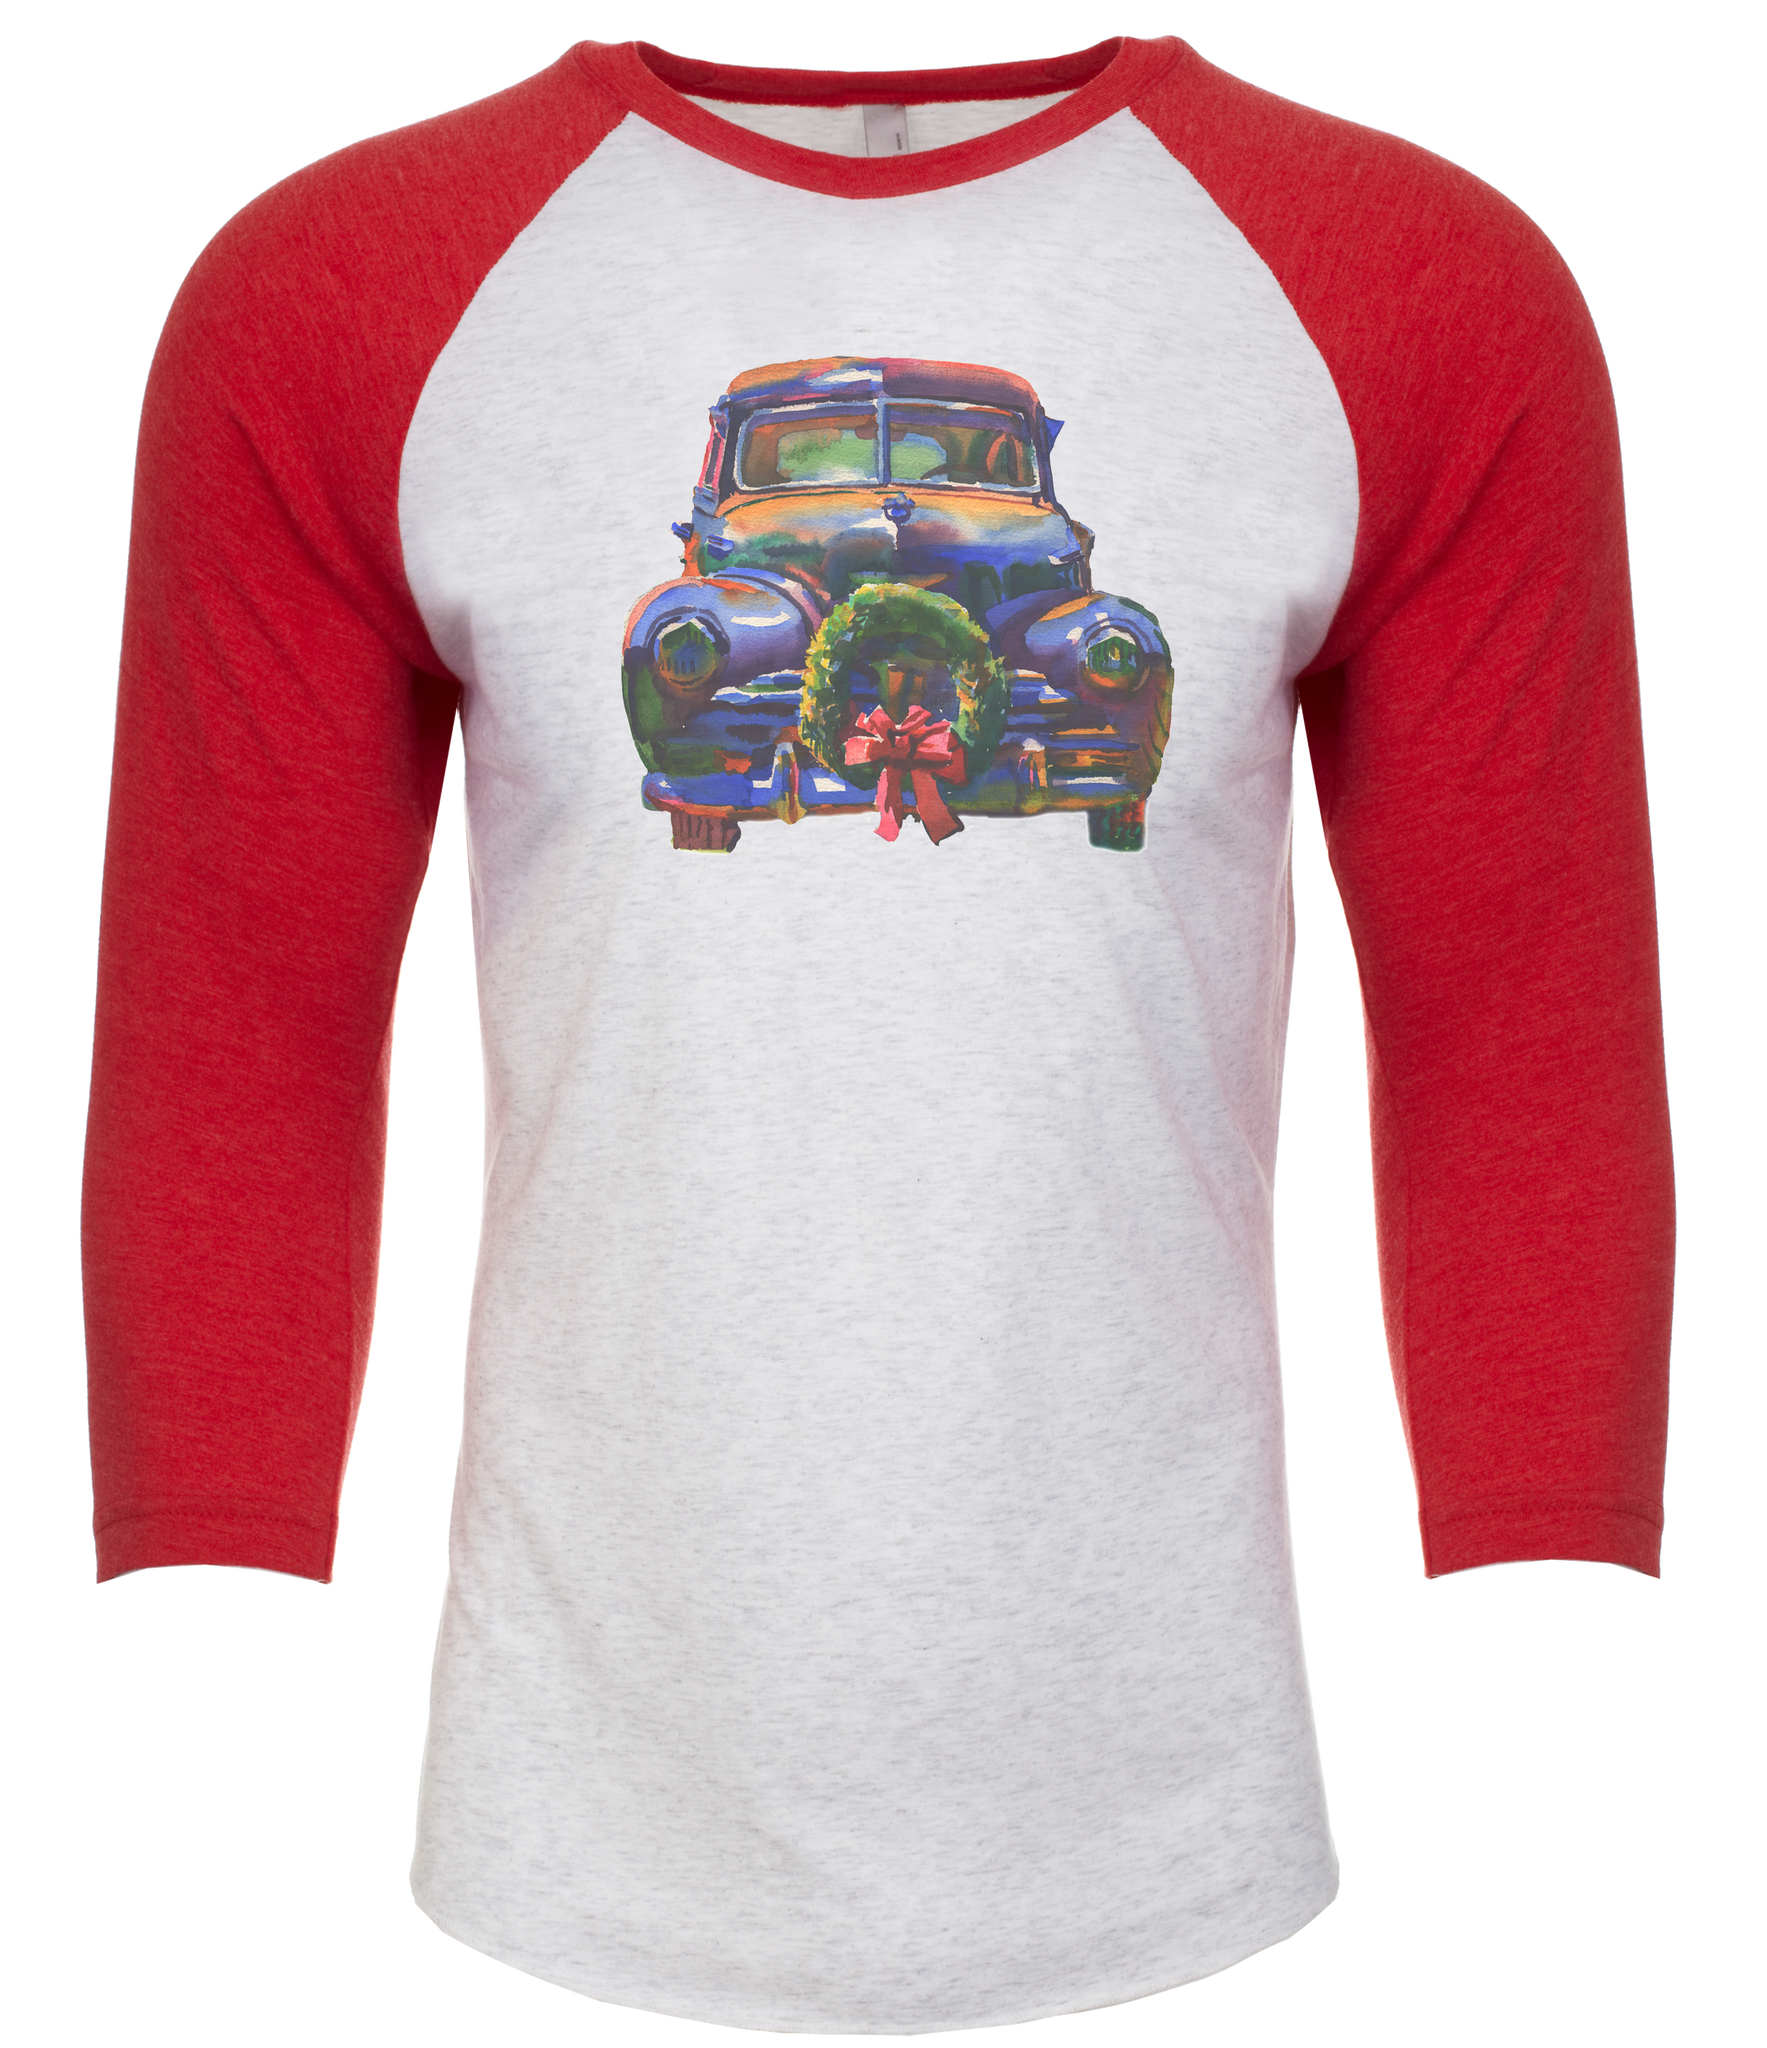 Baseball T-shirt | Christmas Car Wreath